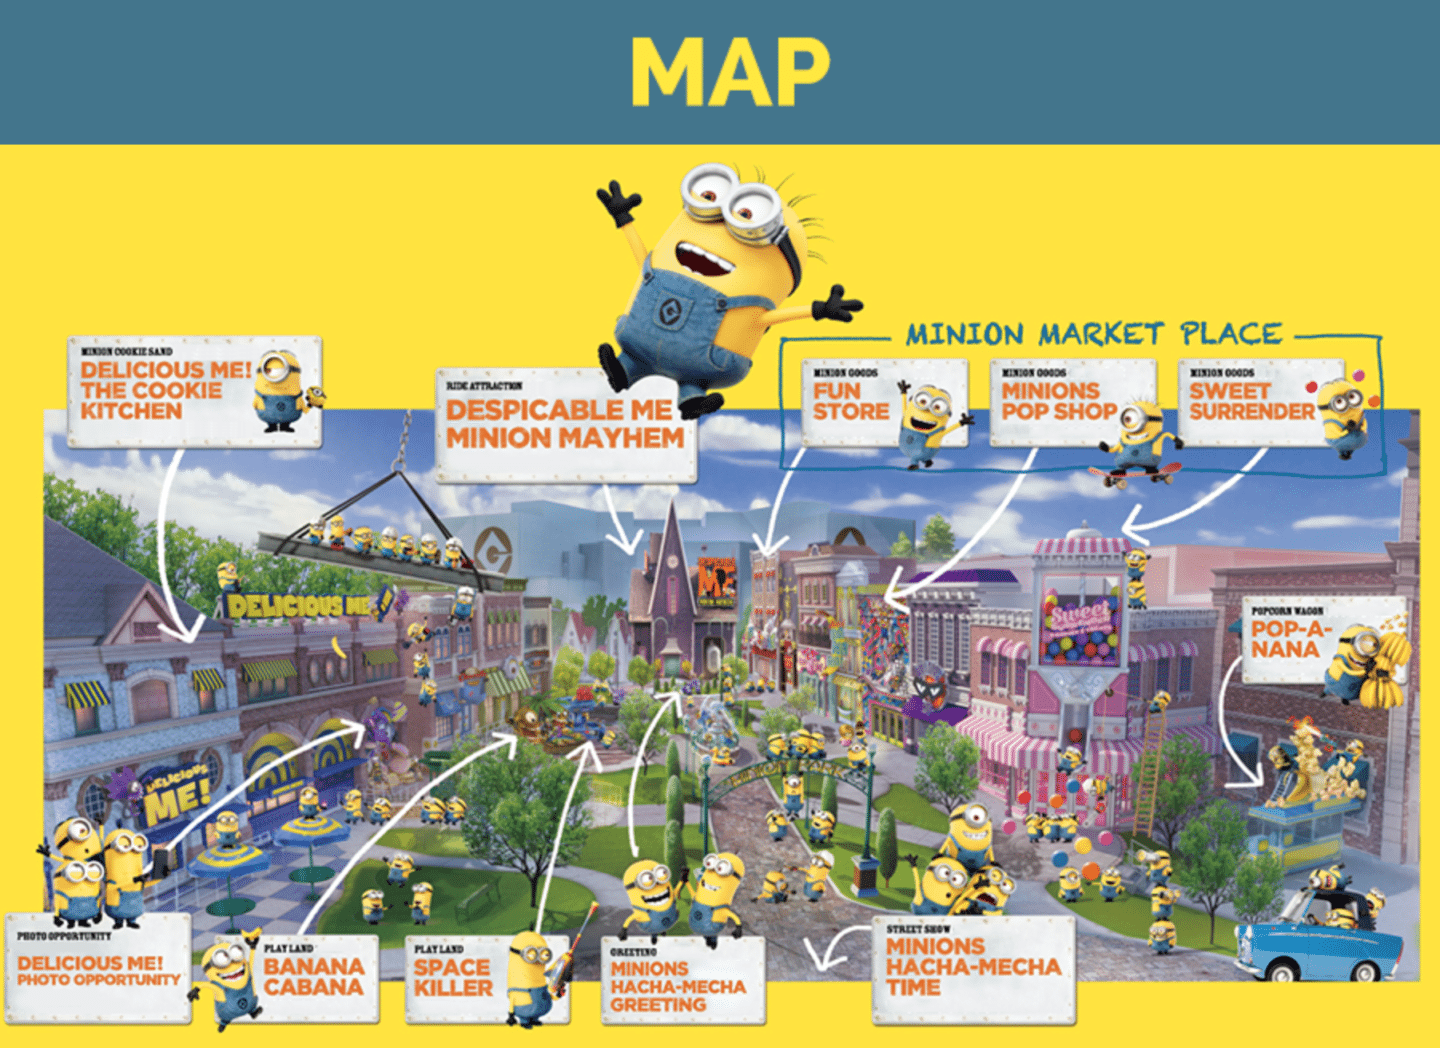 Ultimate Guide To Minions Harry Potter And Halloween At Universal - Japan map 2017